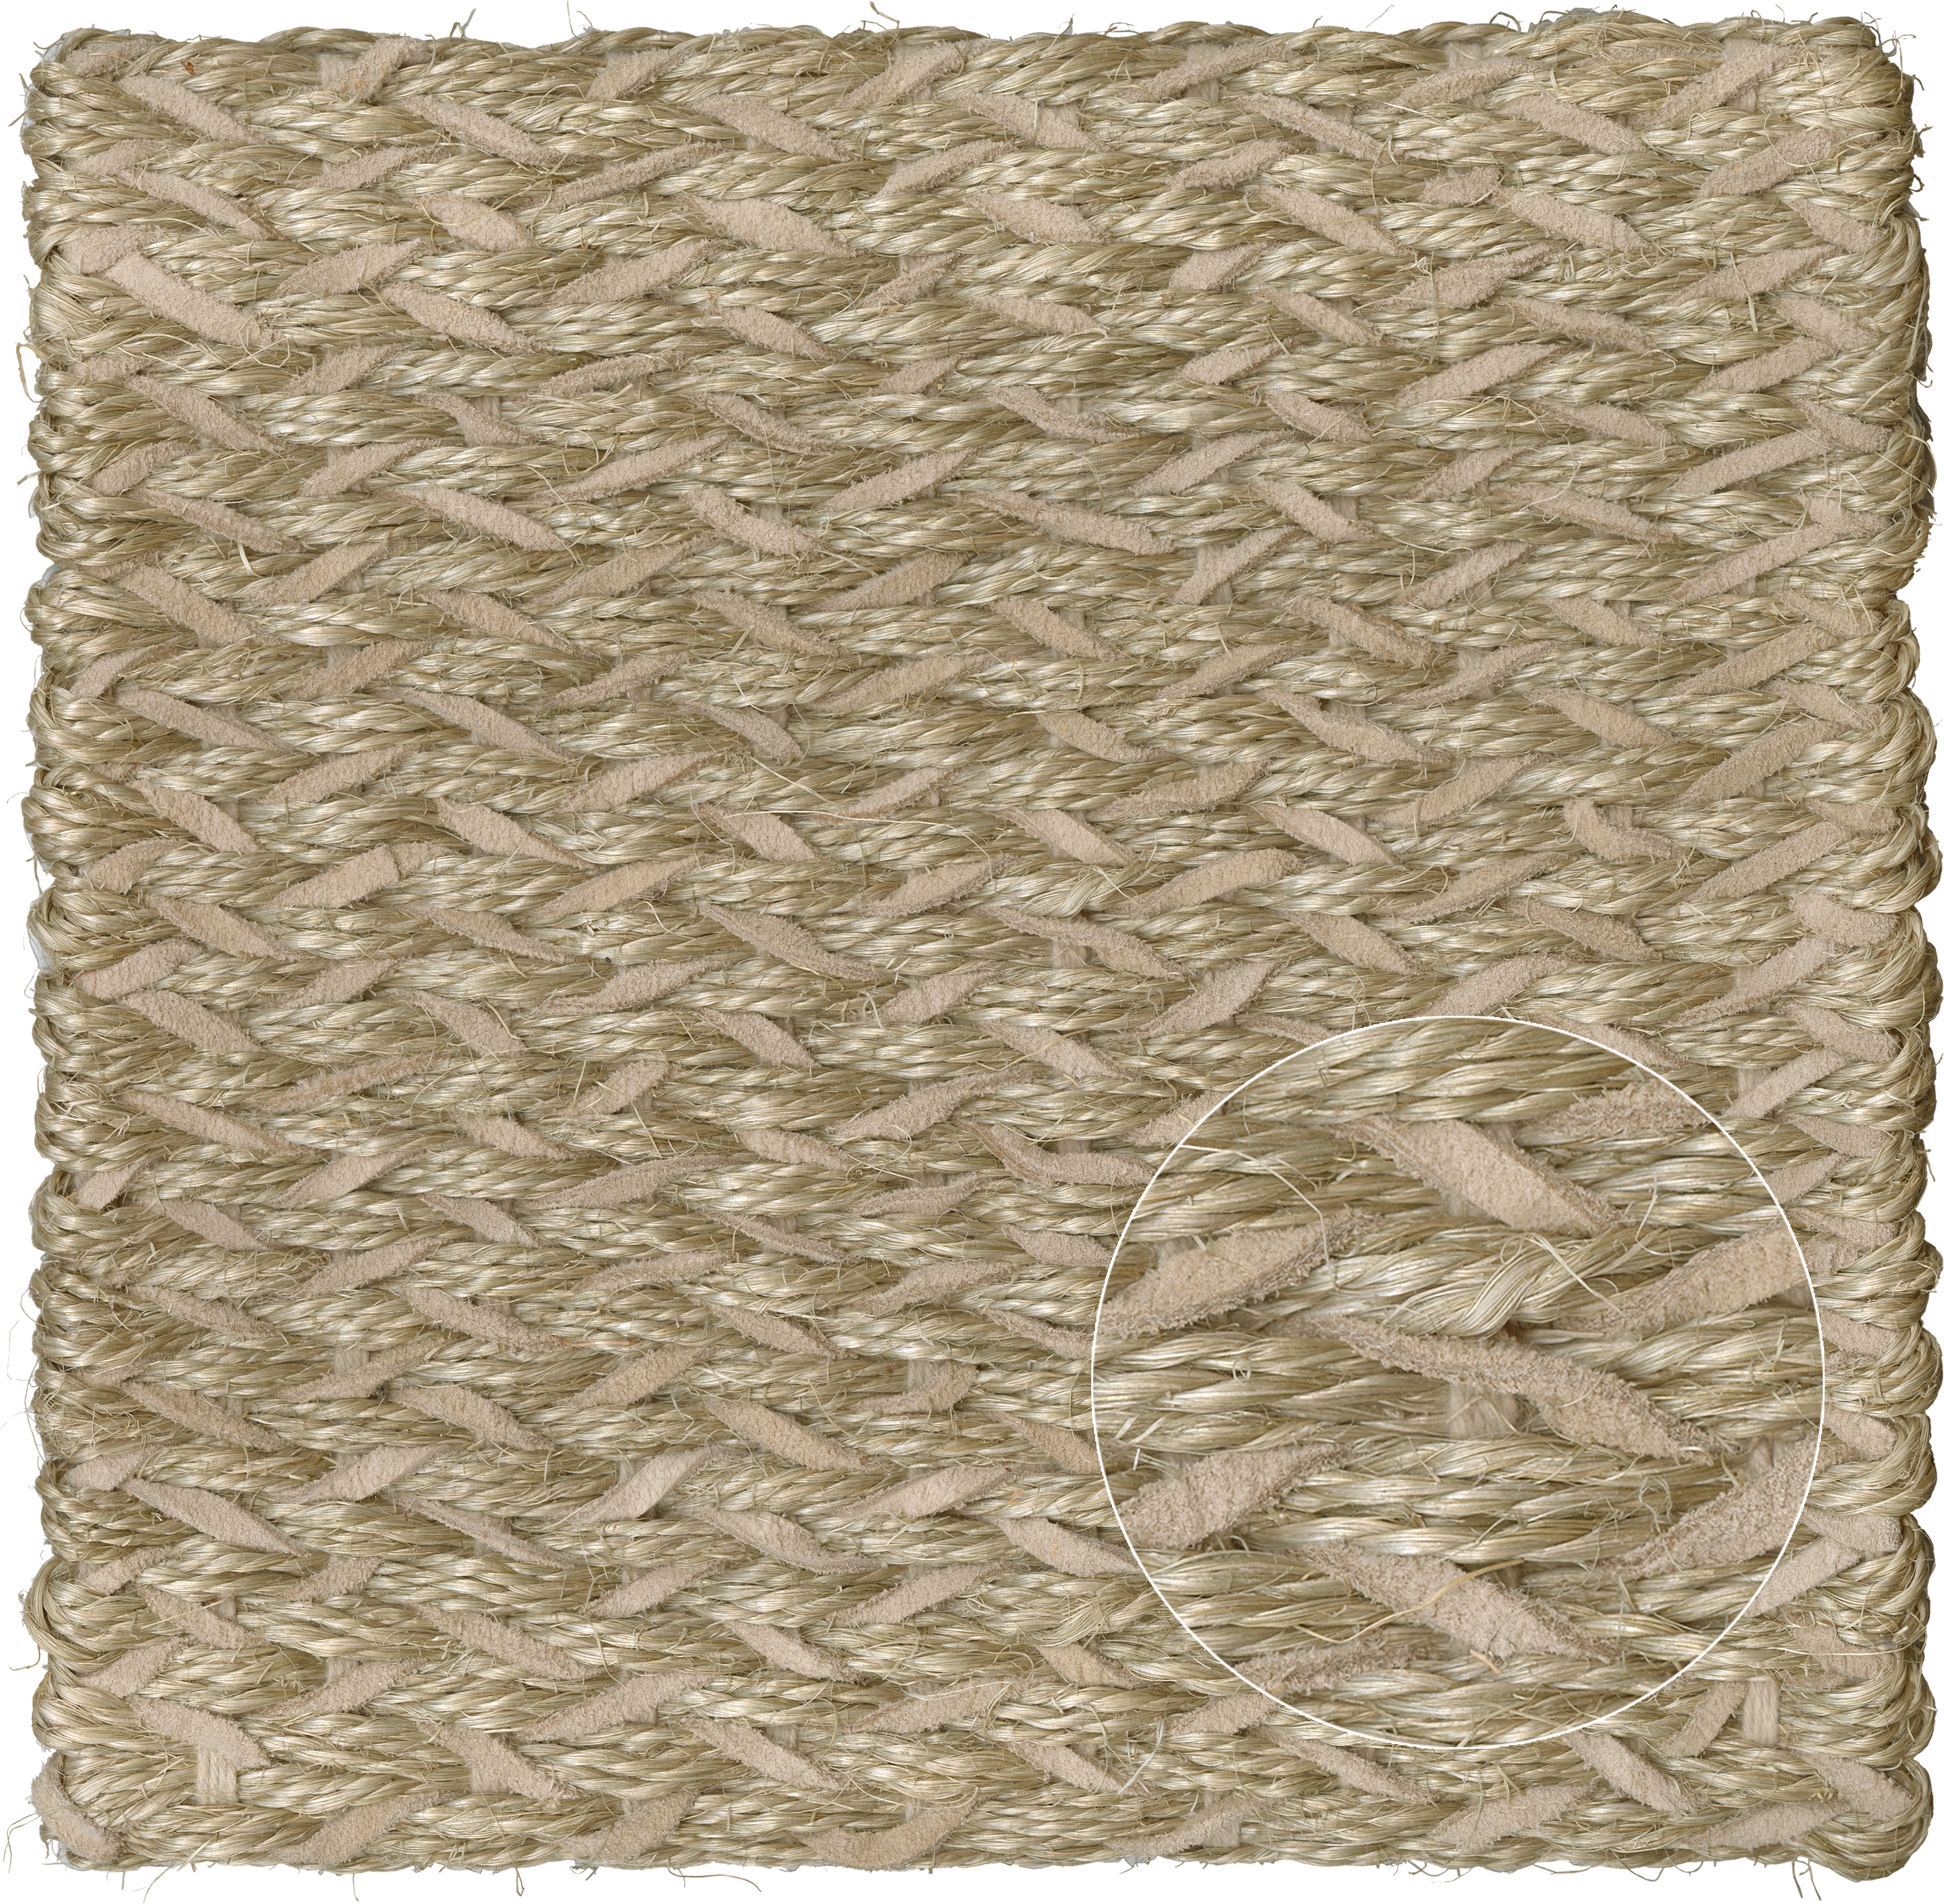 CF-CL-America Sisal-Couro-Grey Leather Sisal